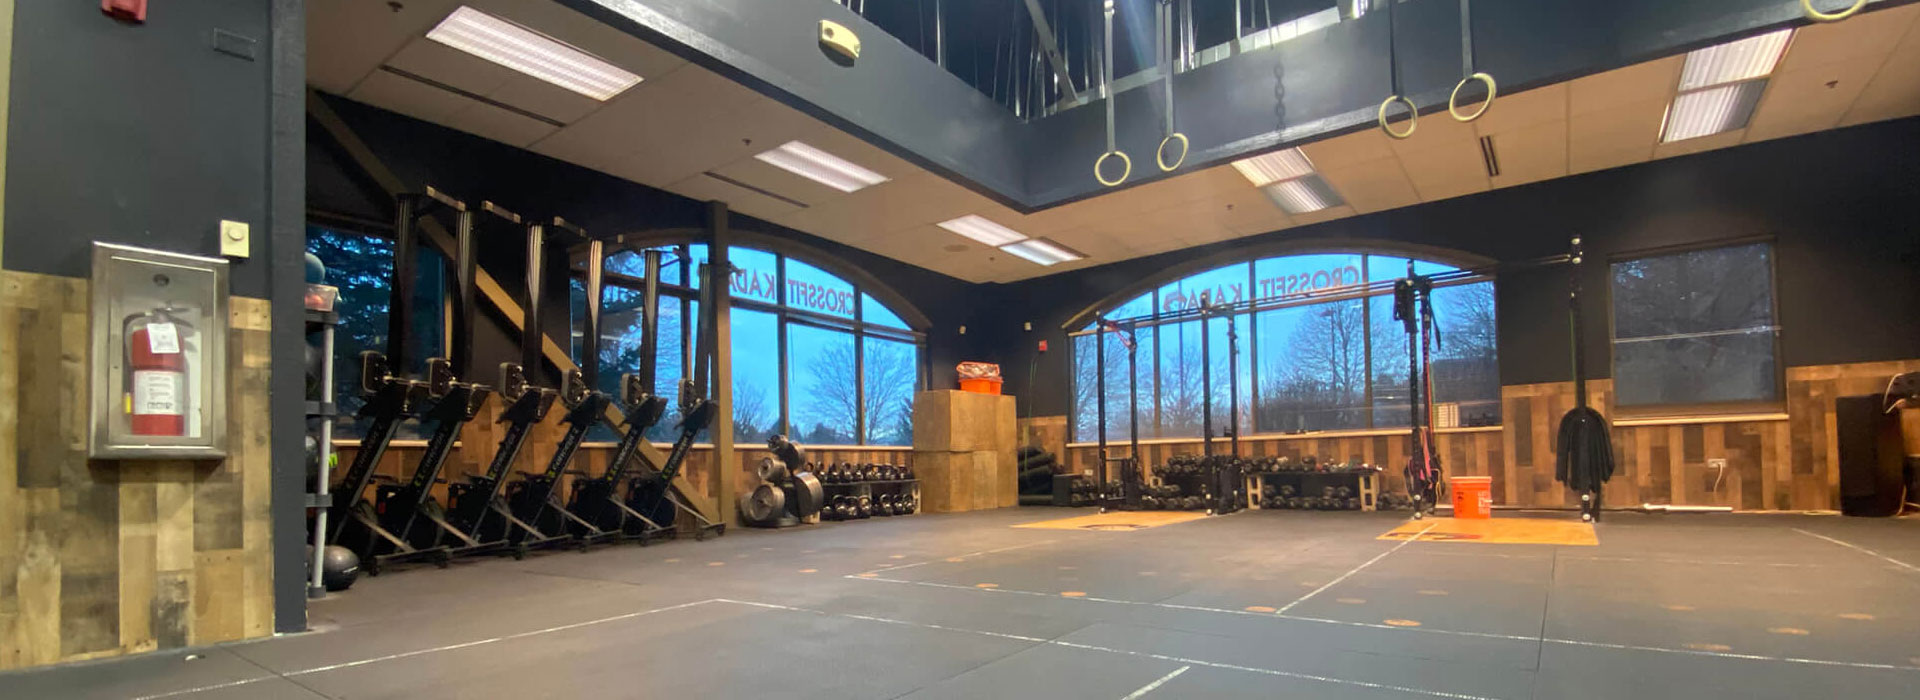 Top 5 Best Gyms To Join Near Littleton CO